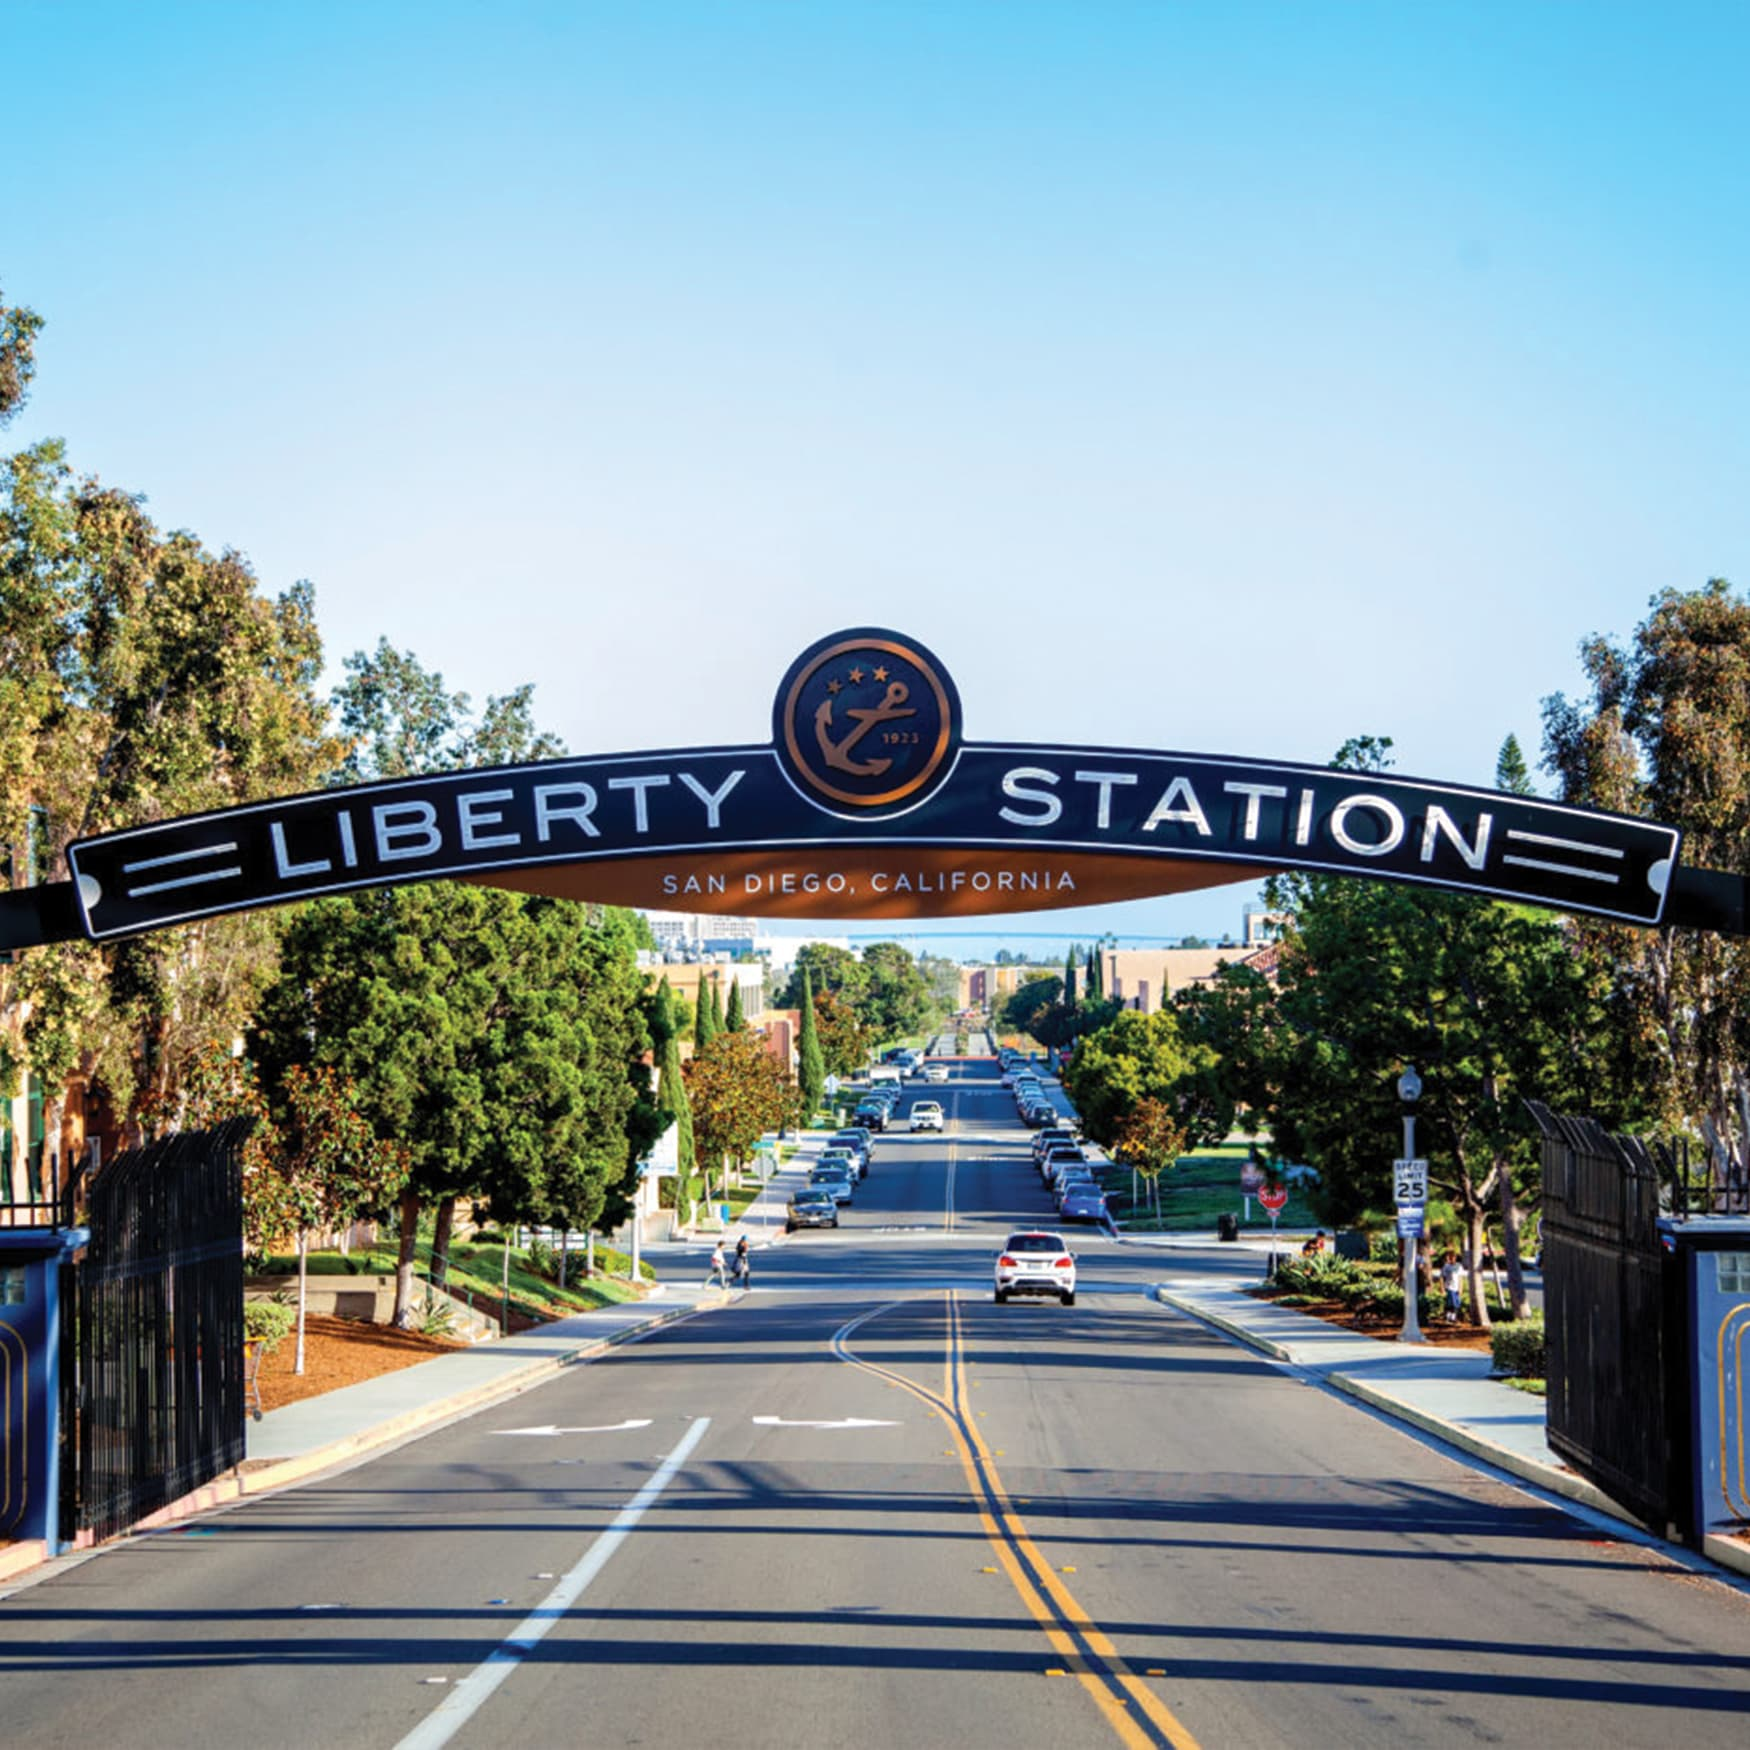 A gateway sign at Liberty Station in San Diego, California.